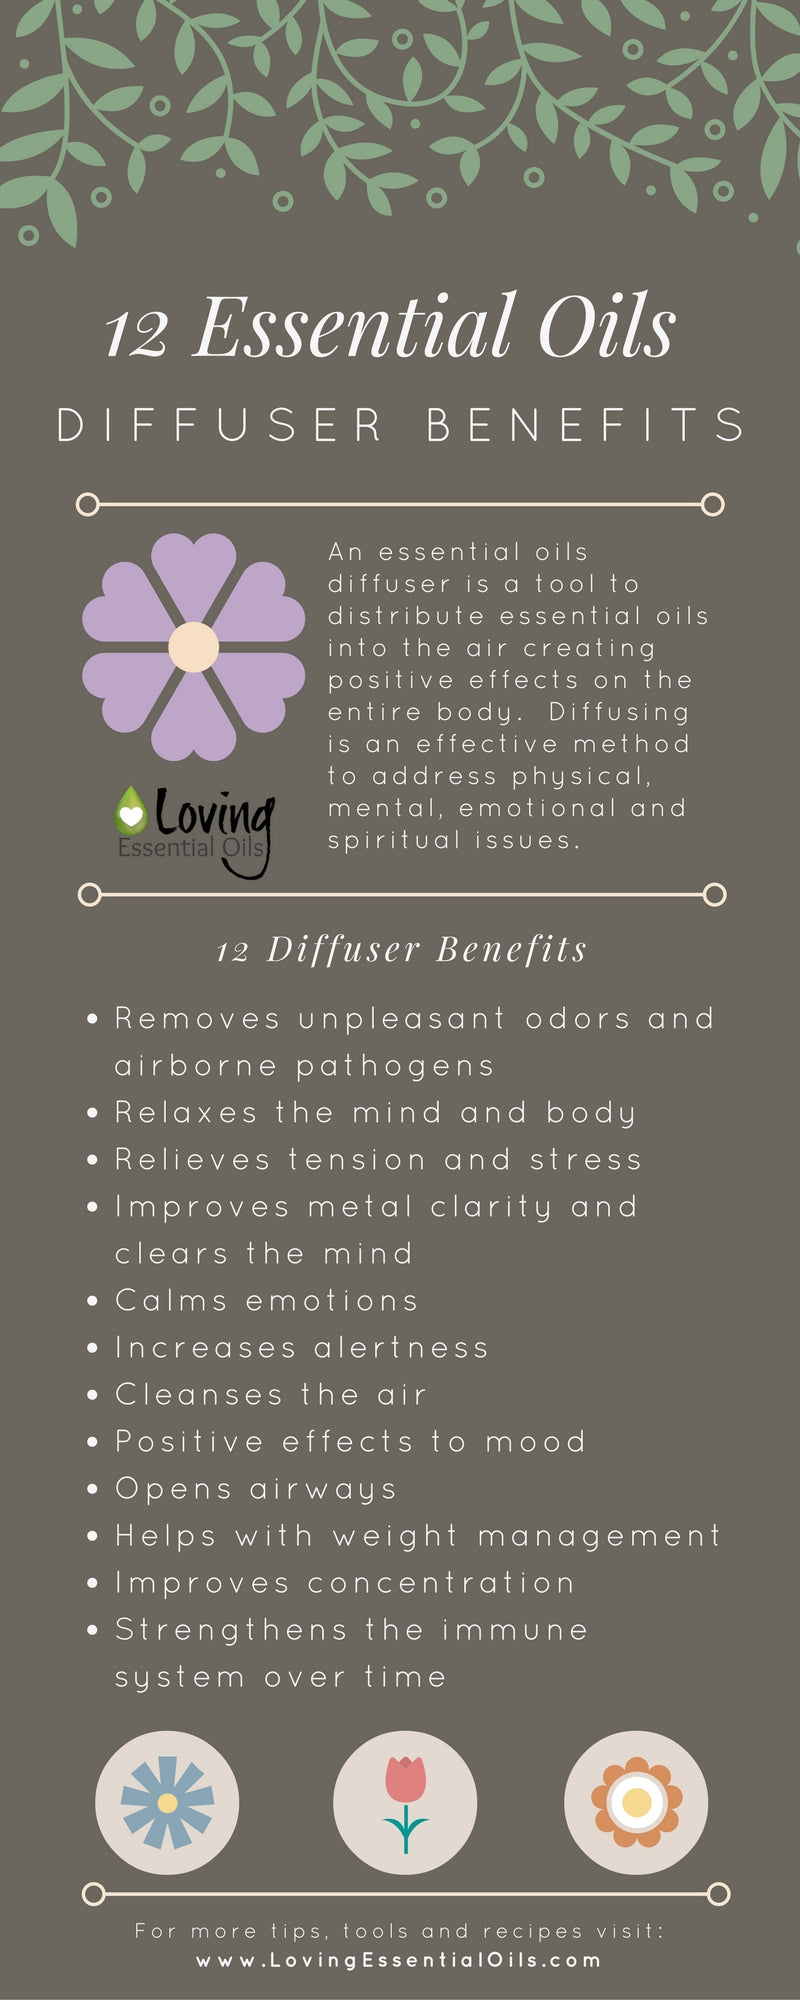 12 Essential Oils Diffuser Benefits Infographic